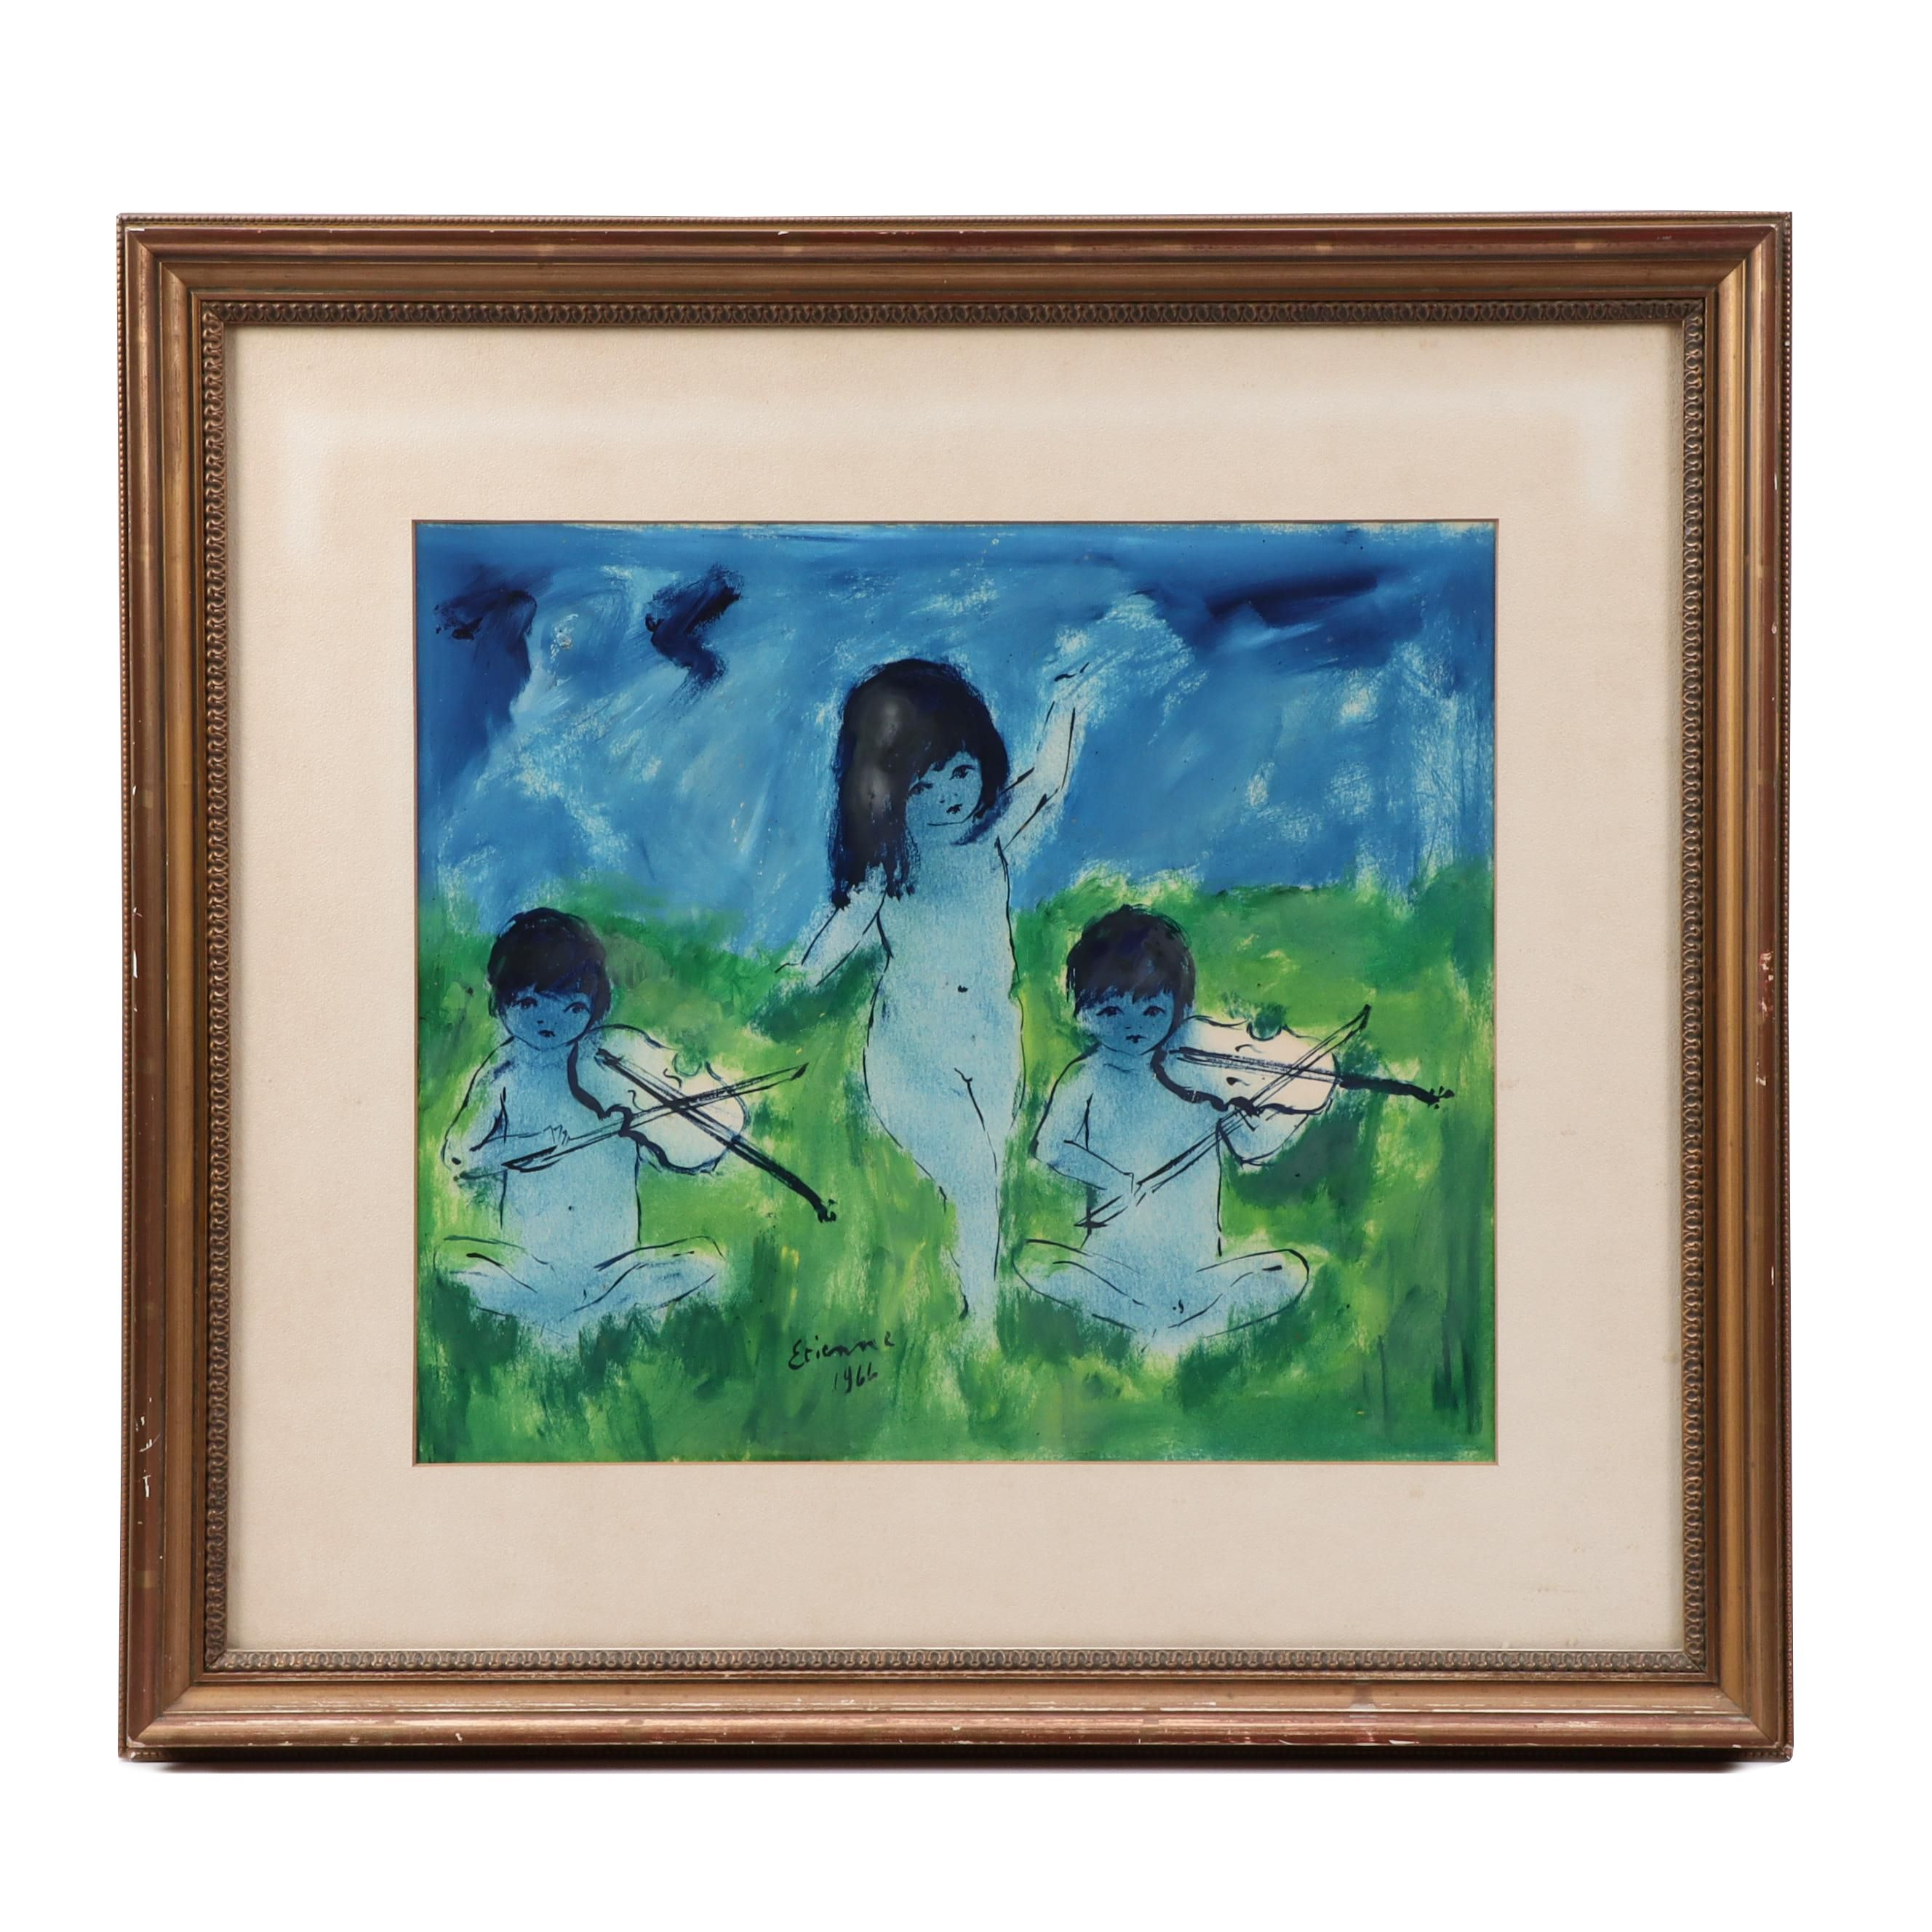 Roger Etienne Tempera Painting of Children Playing Fiddles and Dancing